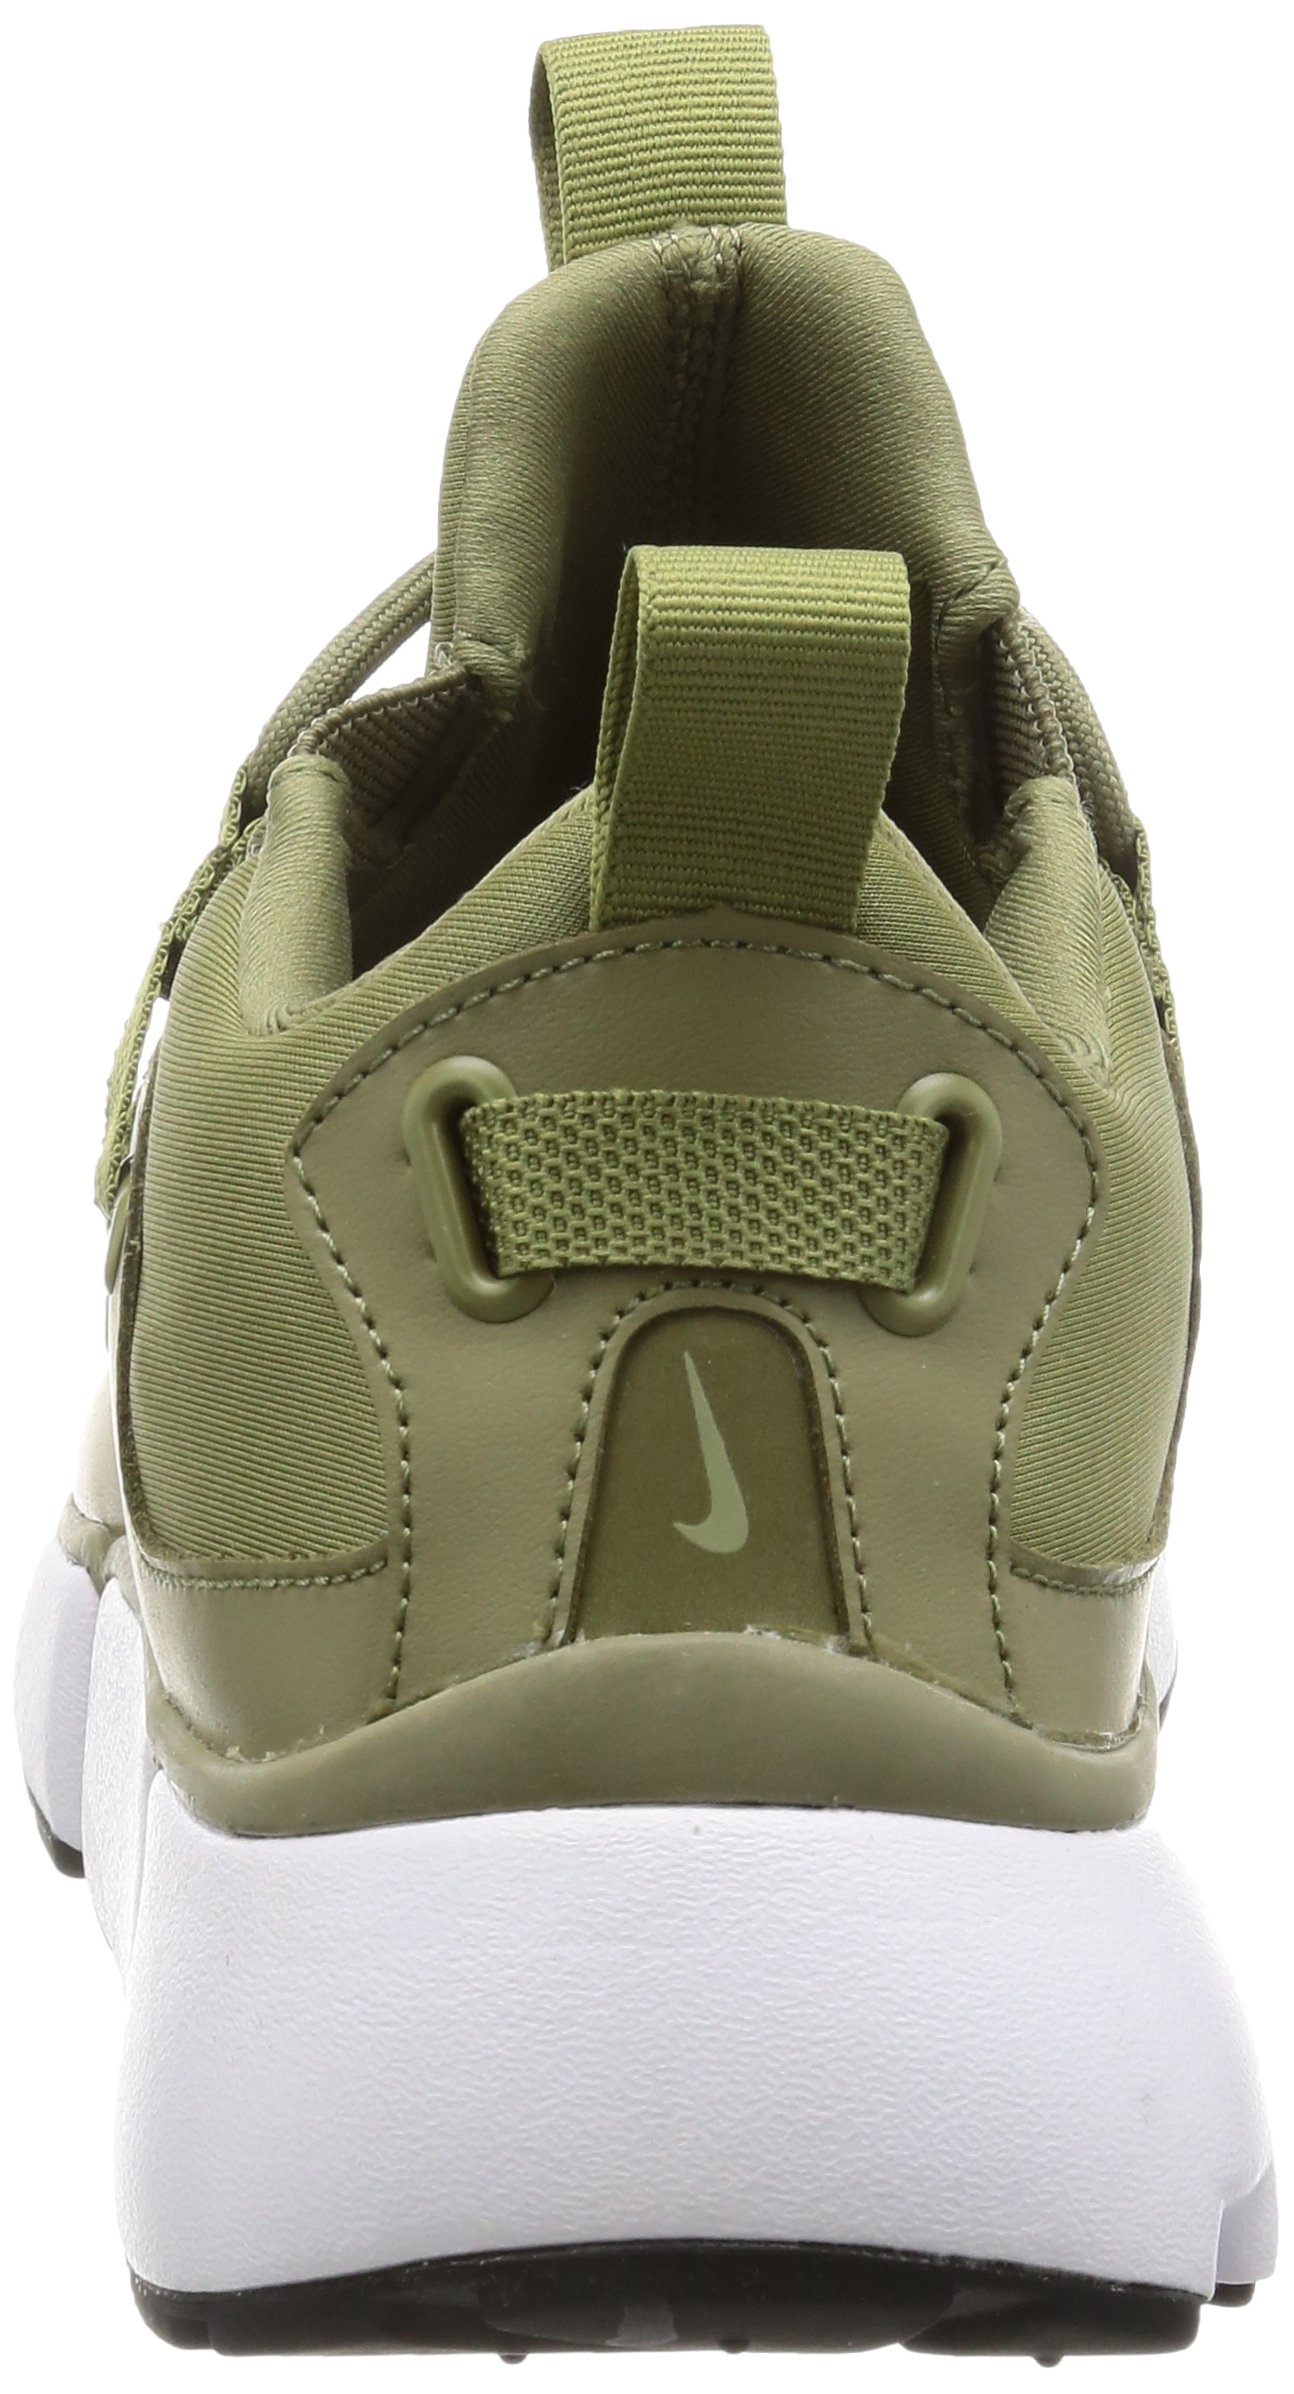 81G62DcA4LL - Nike Men's Trainers